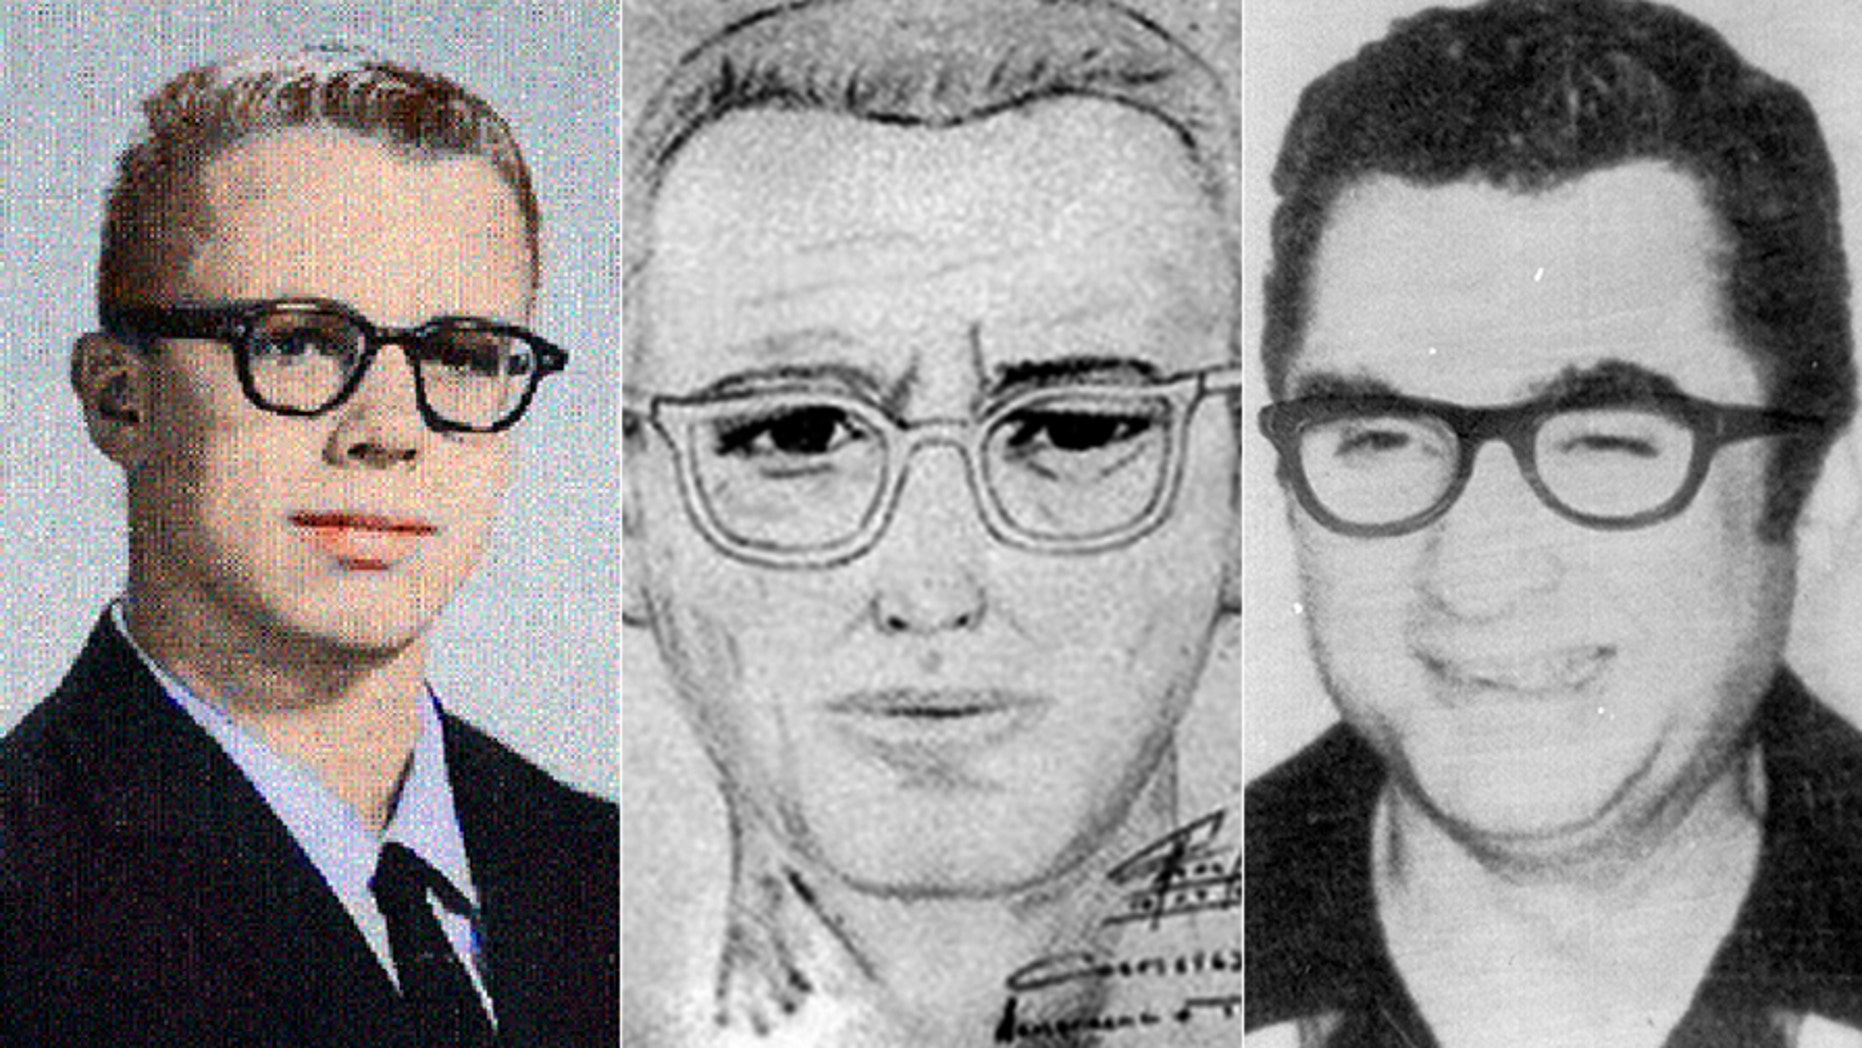 Zodiac Killer: Detectives hope DNA will unlock murderer's ID at last